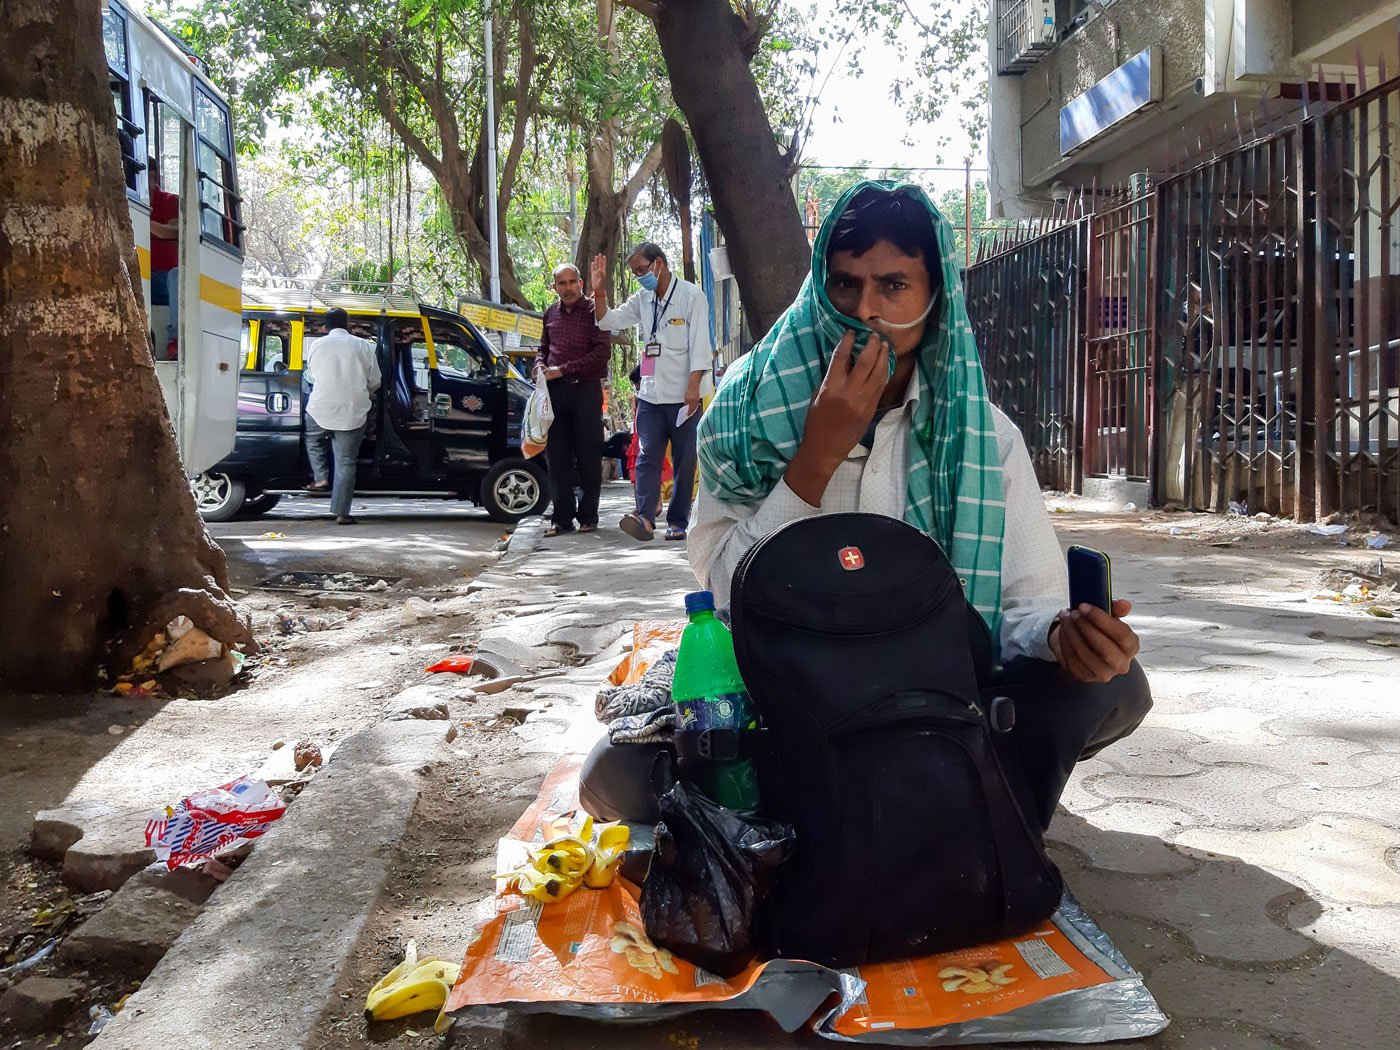 The footpath near the hospital has been home to Surendra. His check-up done, he can longer go back home to Potilia village in Bihar as trains were suspended for the 21-day nationwide lockdown from March 25. And he cannot afford to rent a room in Mumbai